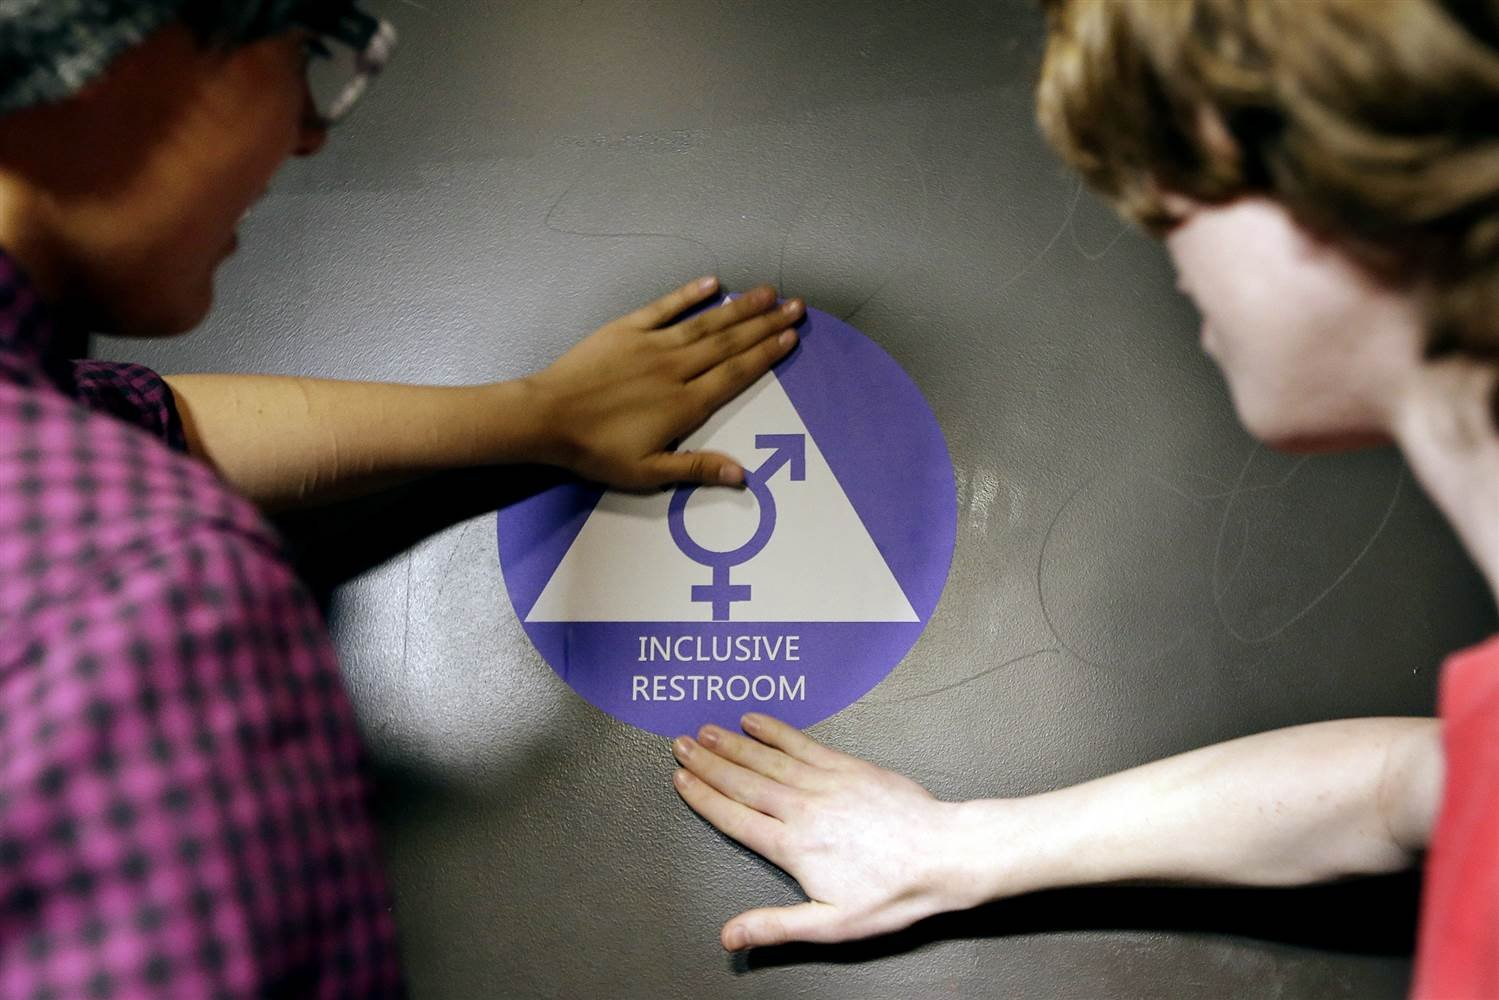 """Destin Cramer and Noah Rice place a new sticker on the door at the ceremonial opening of a gender neutral bathroom at Nathan Hale high school, May 17 in Seattle. Elaine Thompson / AP Publication is intended """"to clarify that discrimination on the basis of"""